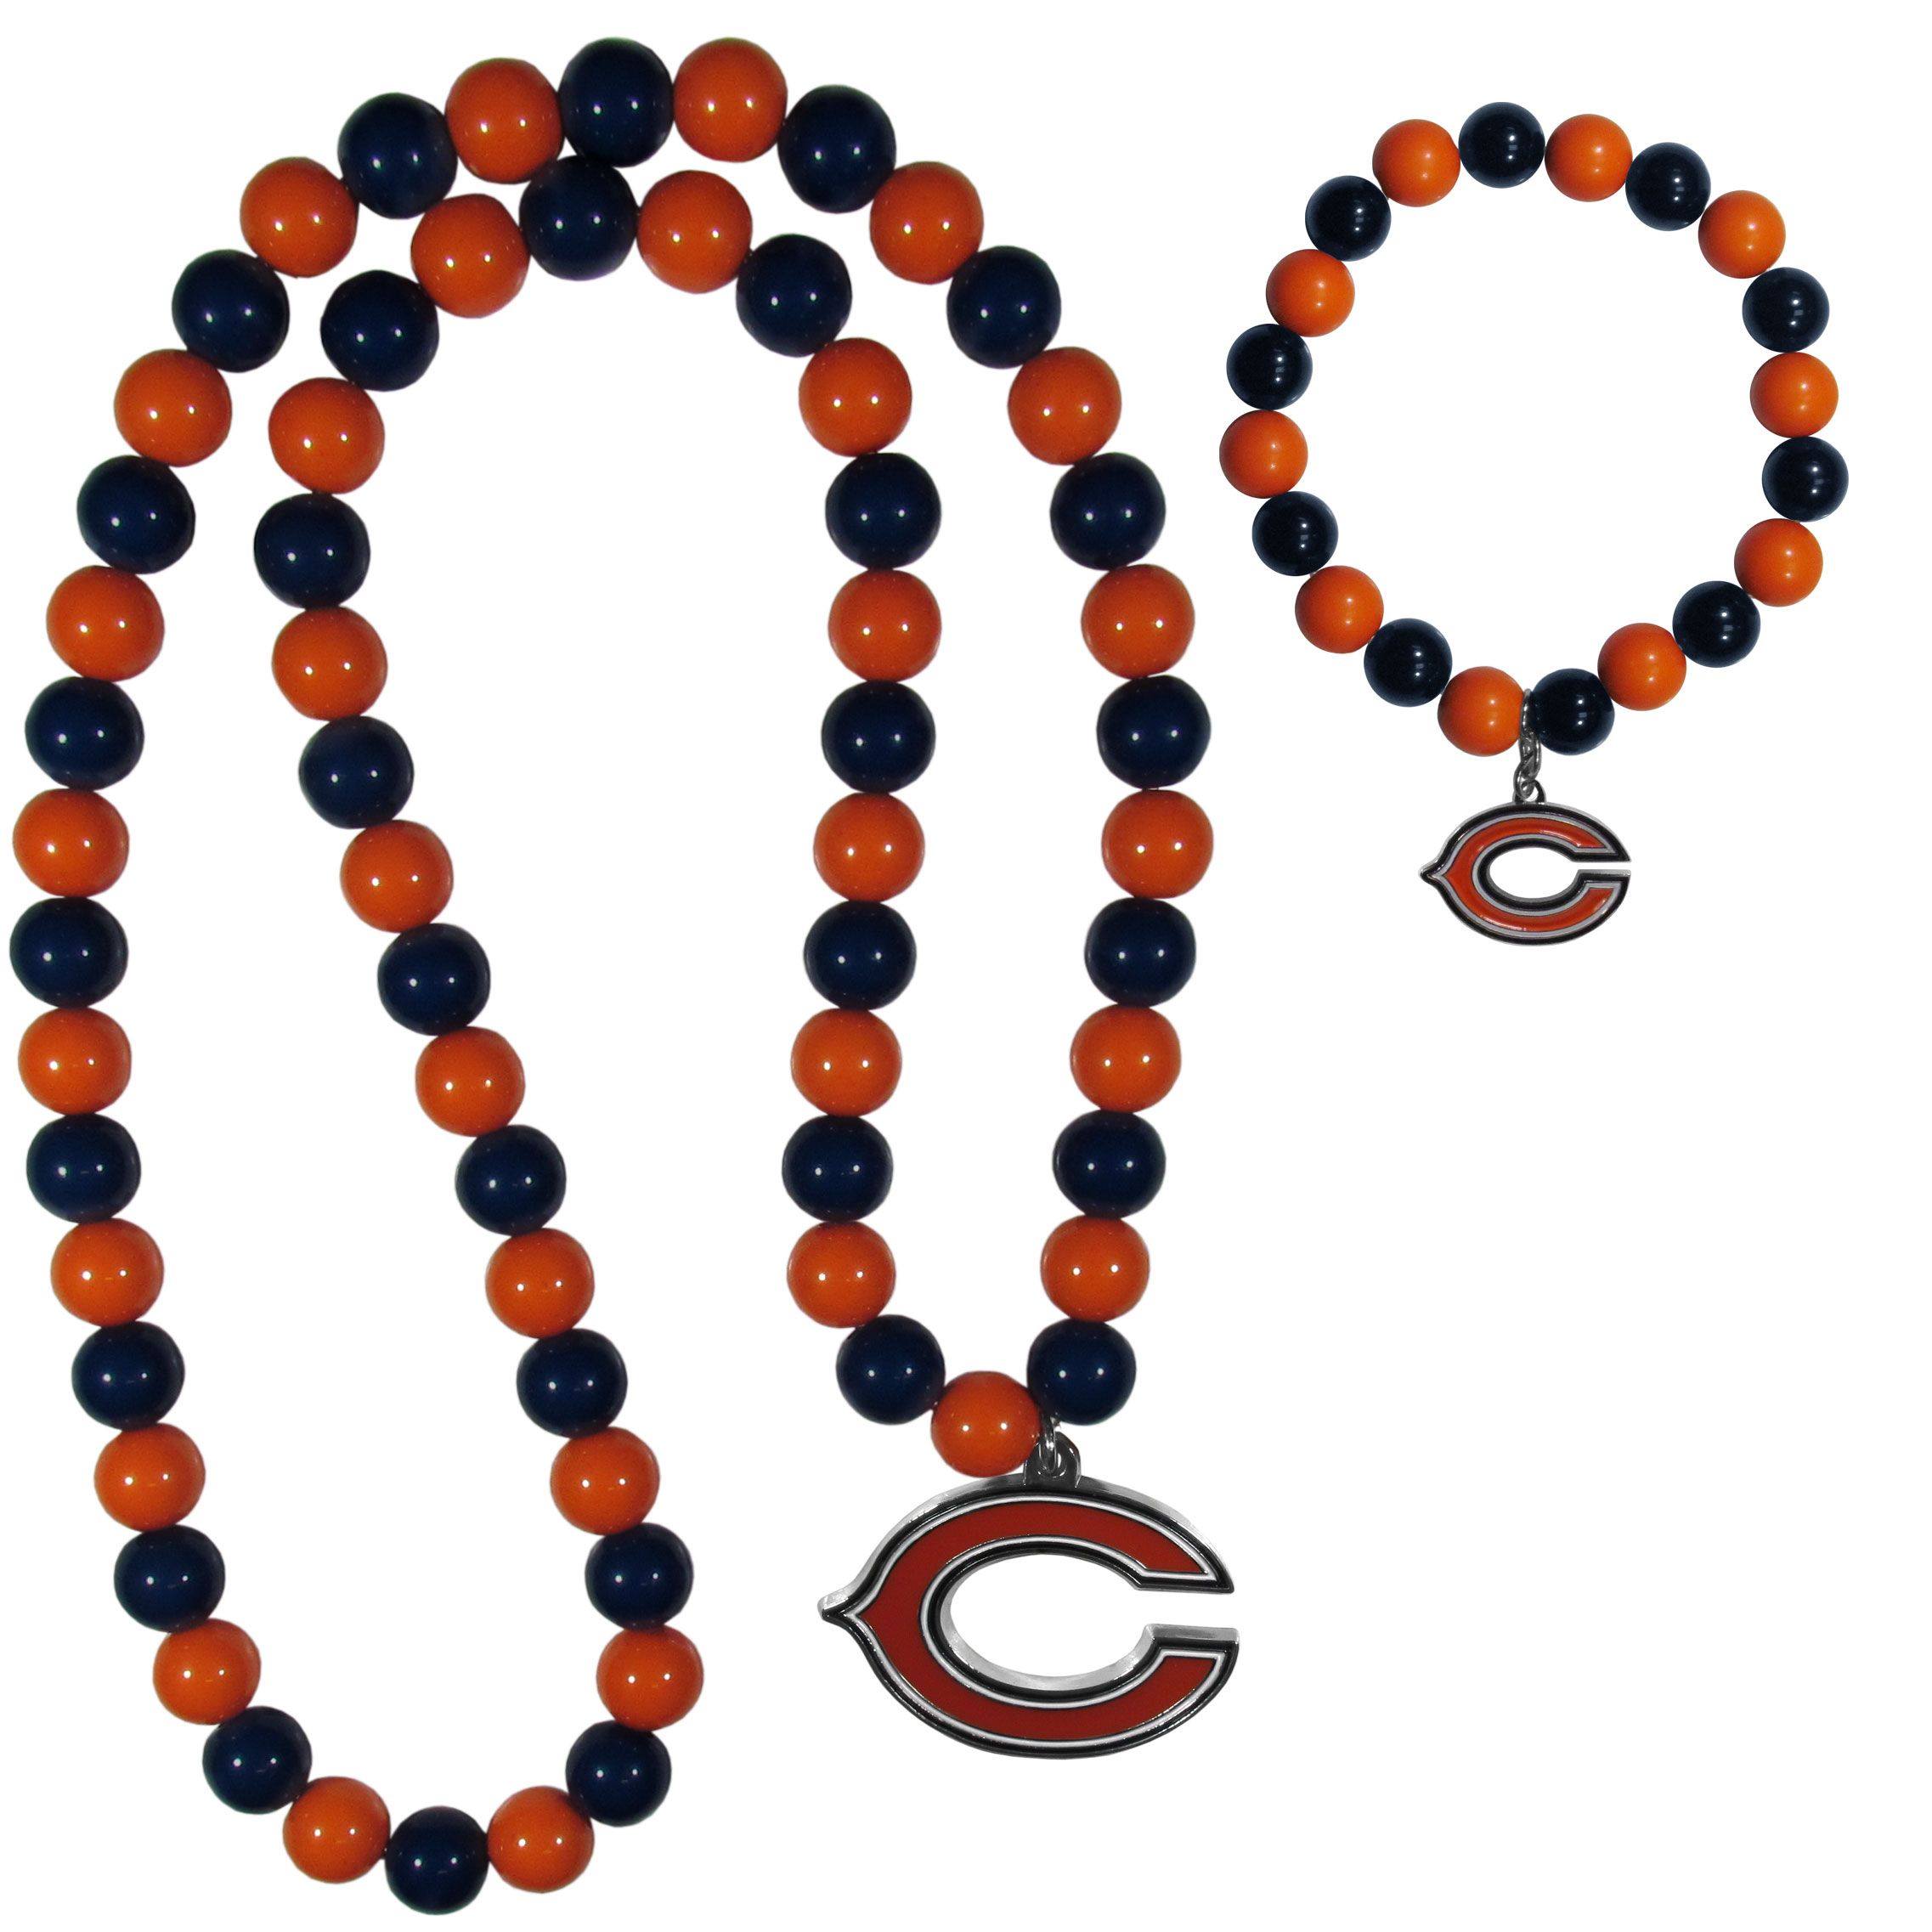 Chicago Bears Fan Bead Necklace and Bracelet Set - These fun and colorful Chicago Bears fan bead jewelry pieces are an eyecatching way to show off your team spirit. The striking necklace is a 24 inch string of alternating team colored beads with a large team pendant. The mathcing bracelet has alternating team colored beads on a stretch cord and features a matching team charm.